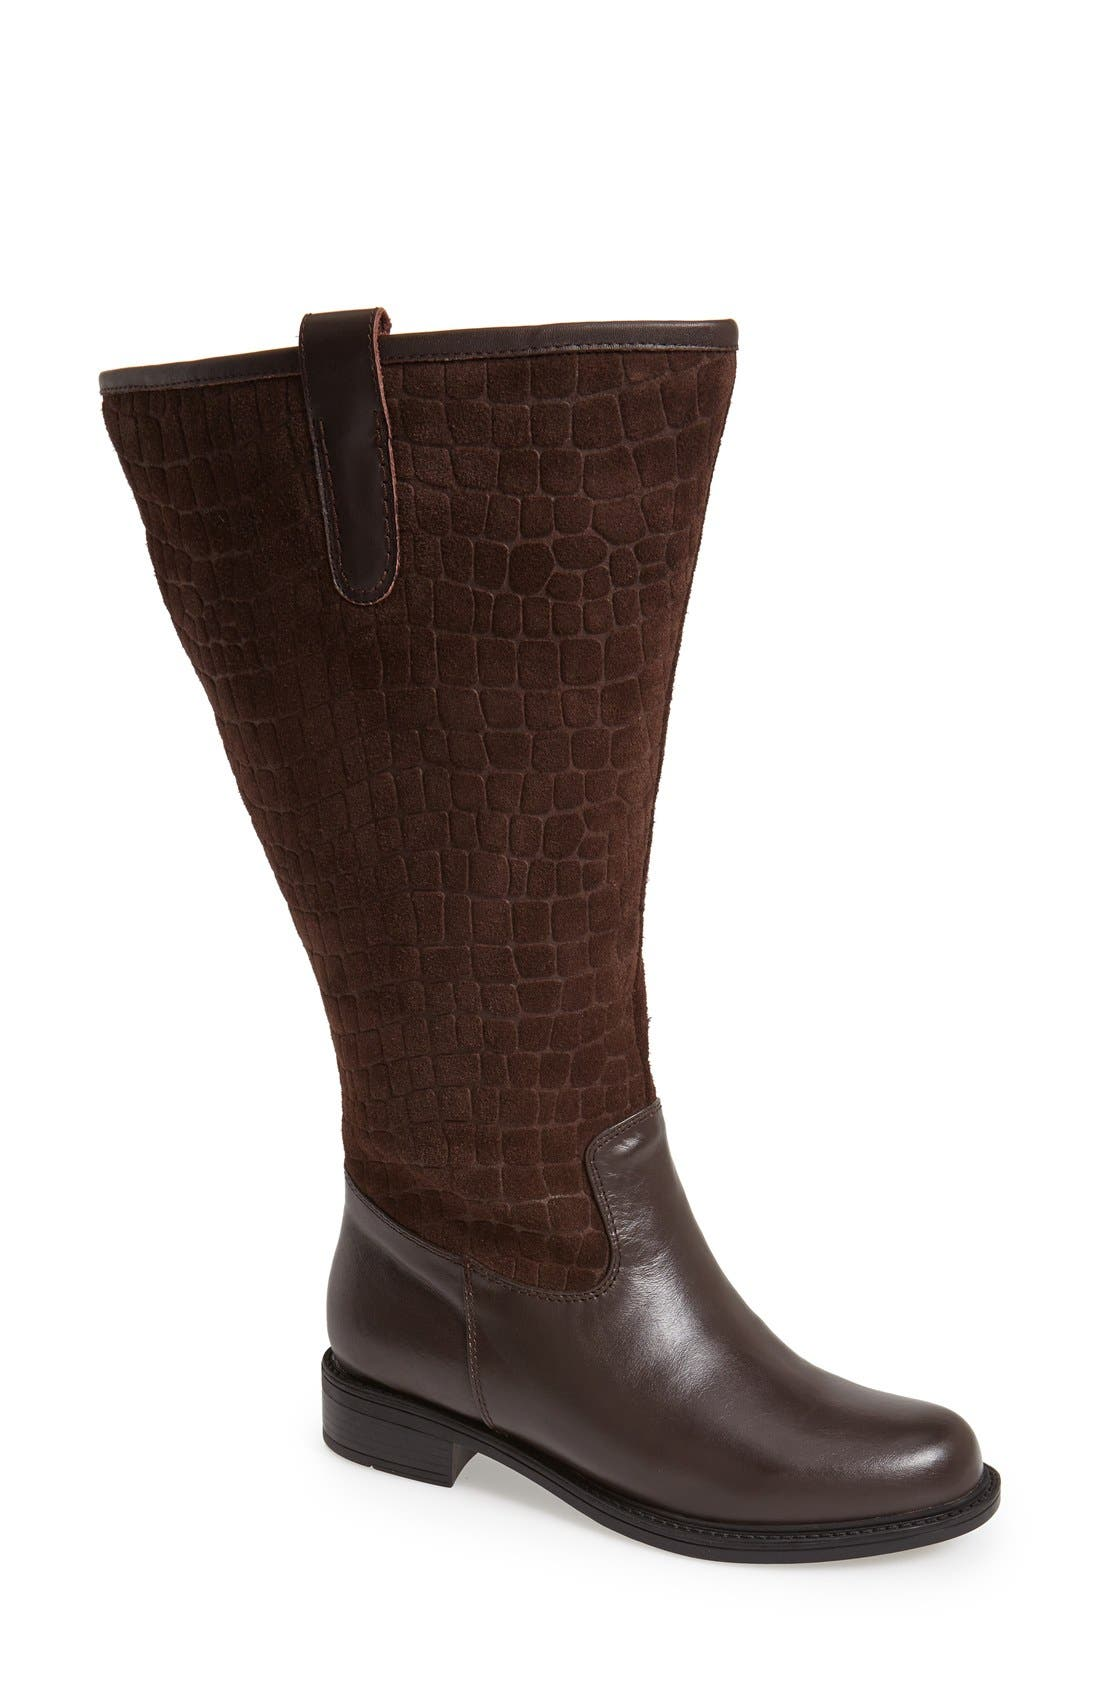 'Best' Calfskin Leather & Suede Boot,                             Main thumbnail 1, color,                             Brown Calf/ Suede